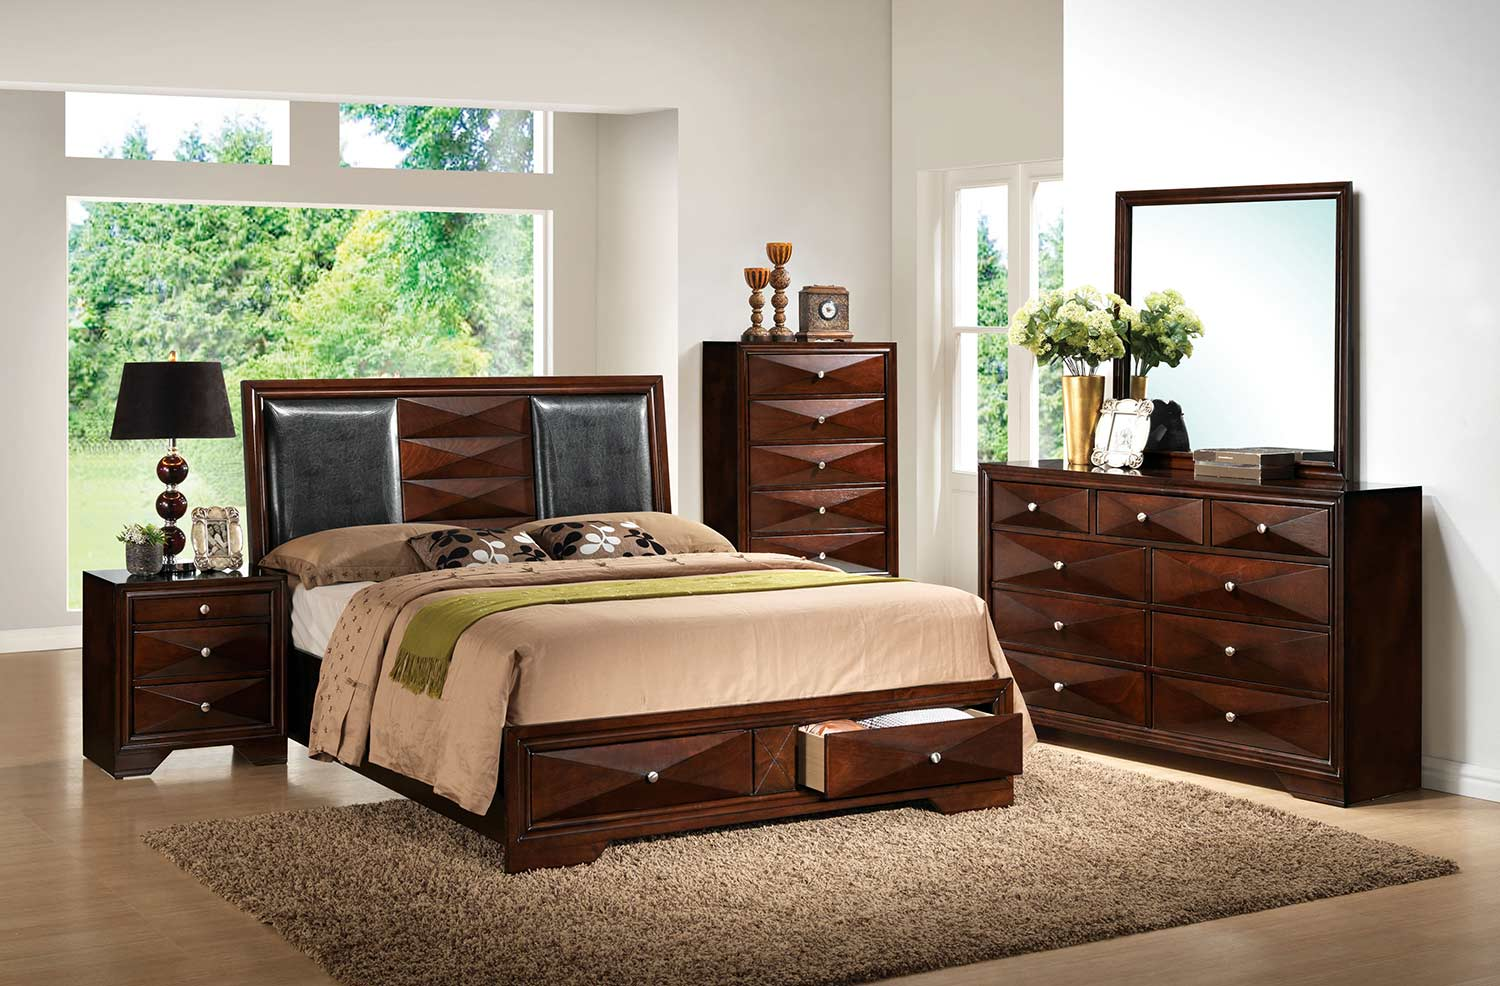 Acme Windsor Bedroom Set with Storage - Black Vinyl/Merlot